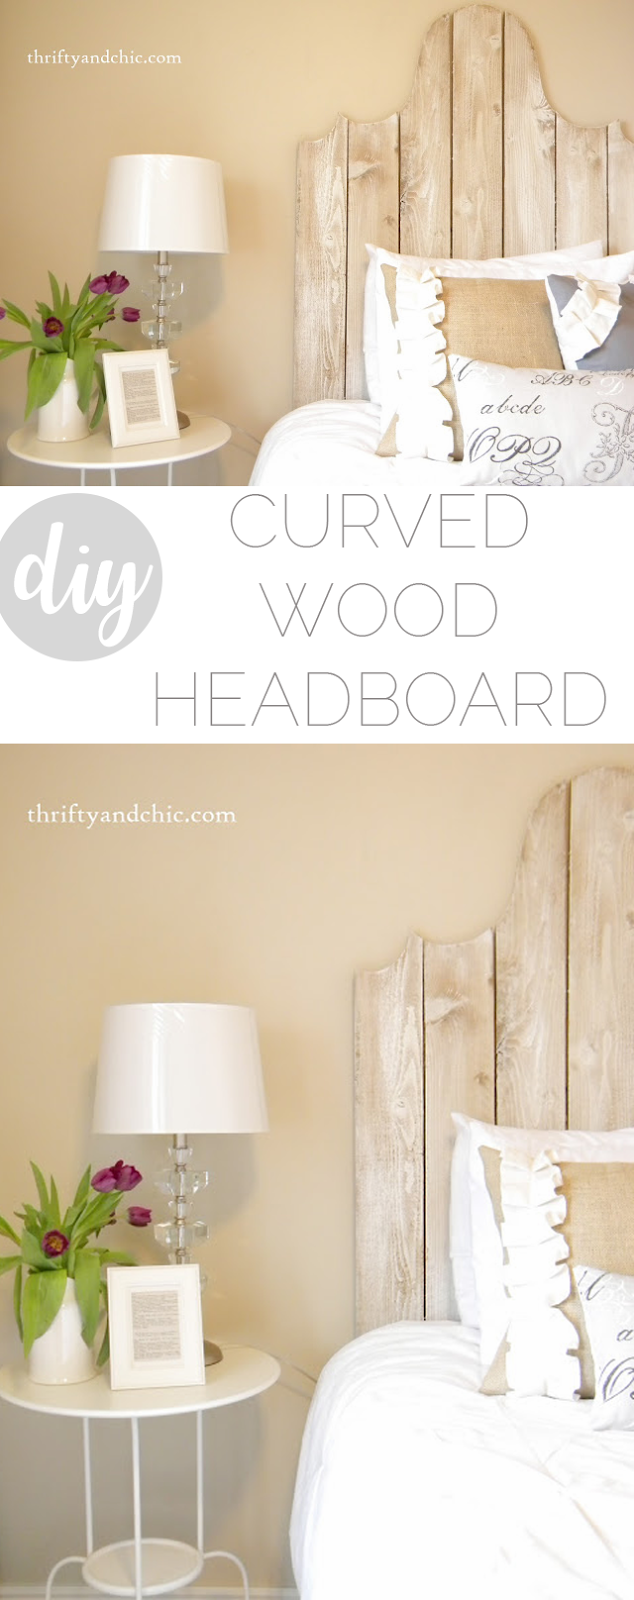 diy farmhouse style wood headboard. Check out this simple little trick to get symmetrical curves!